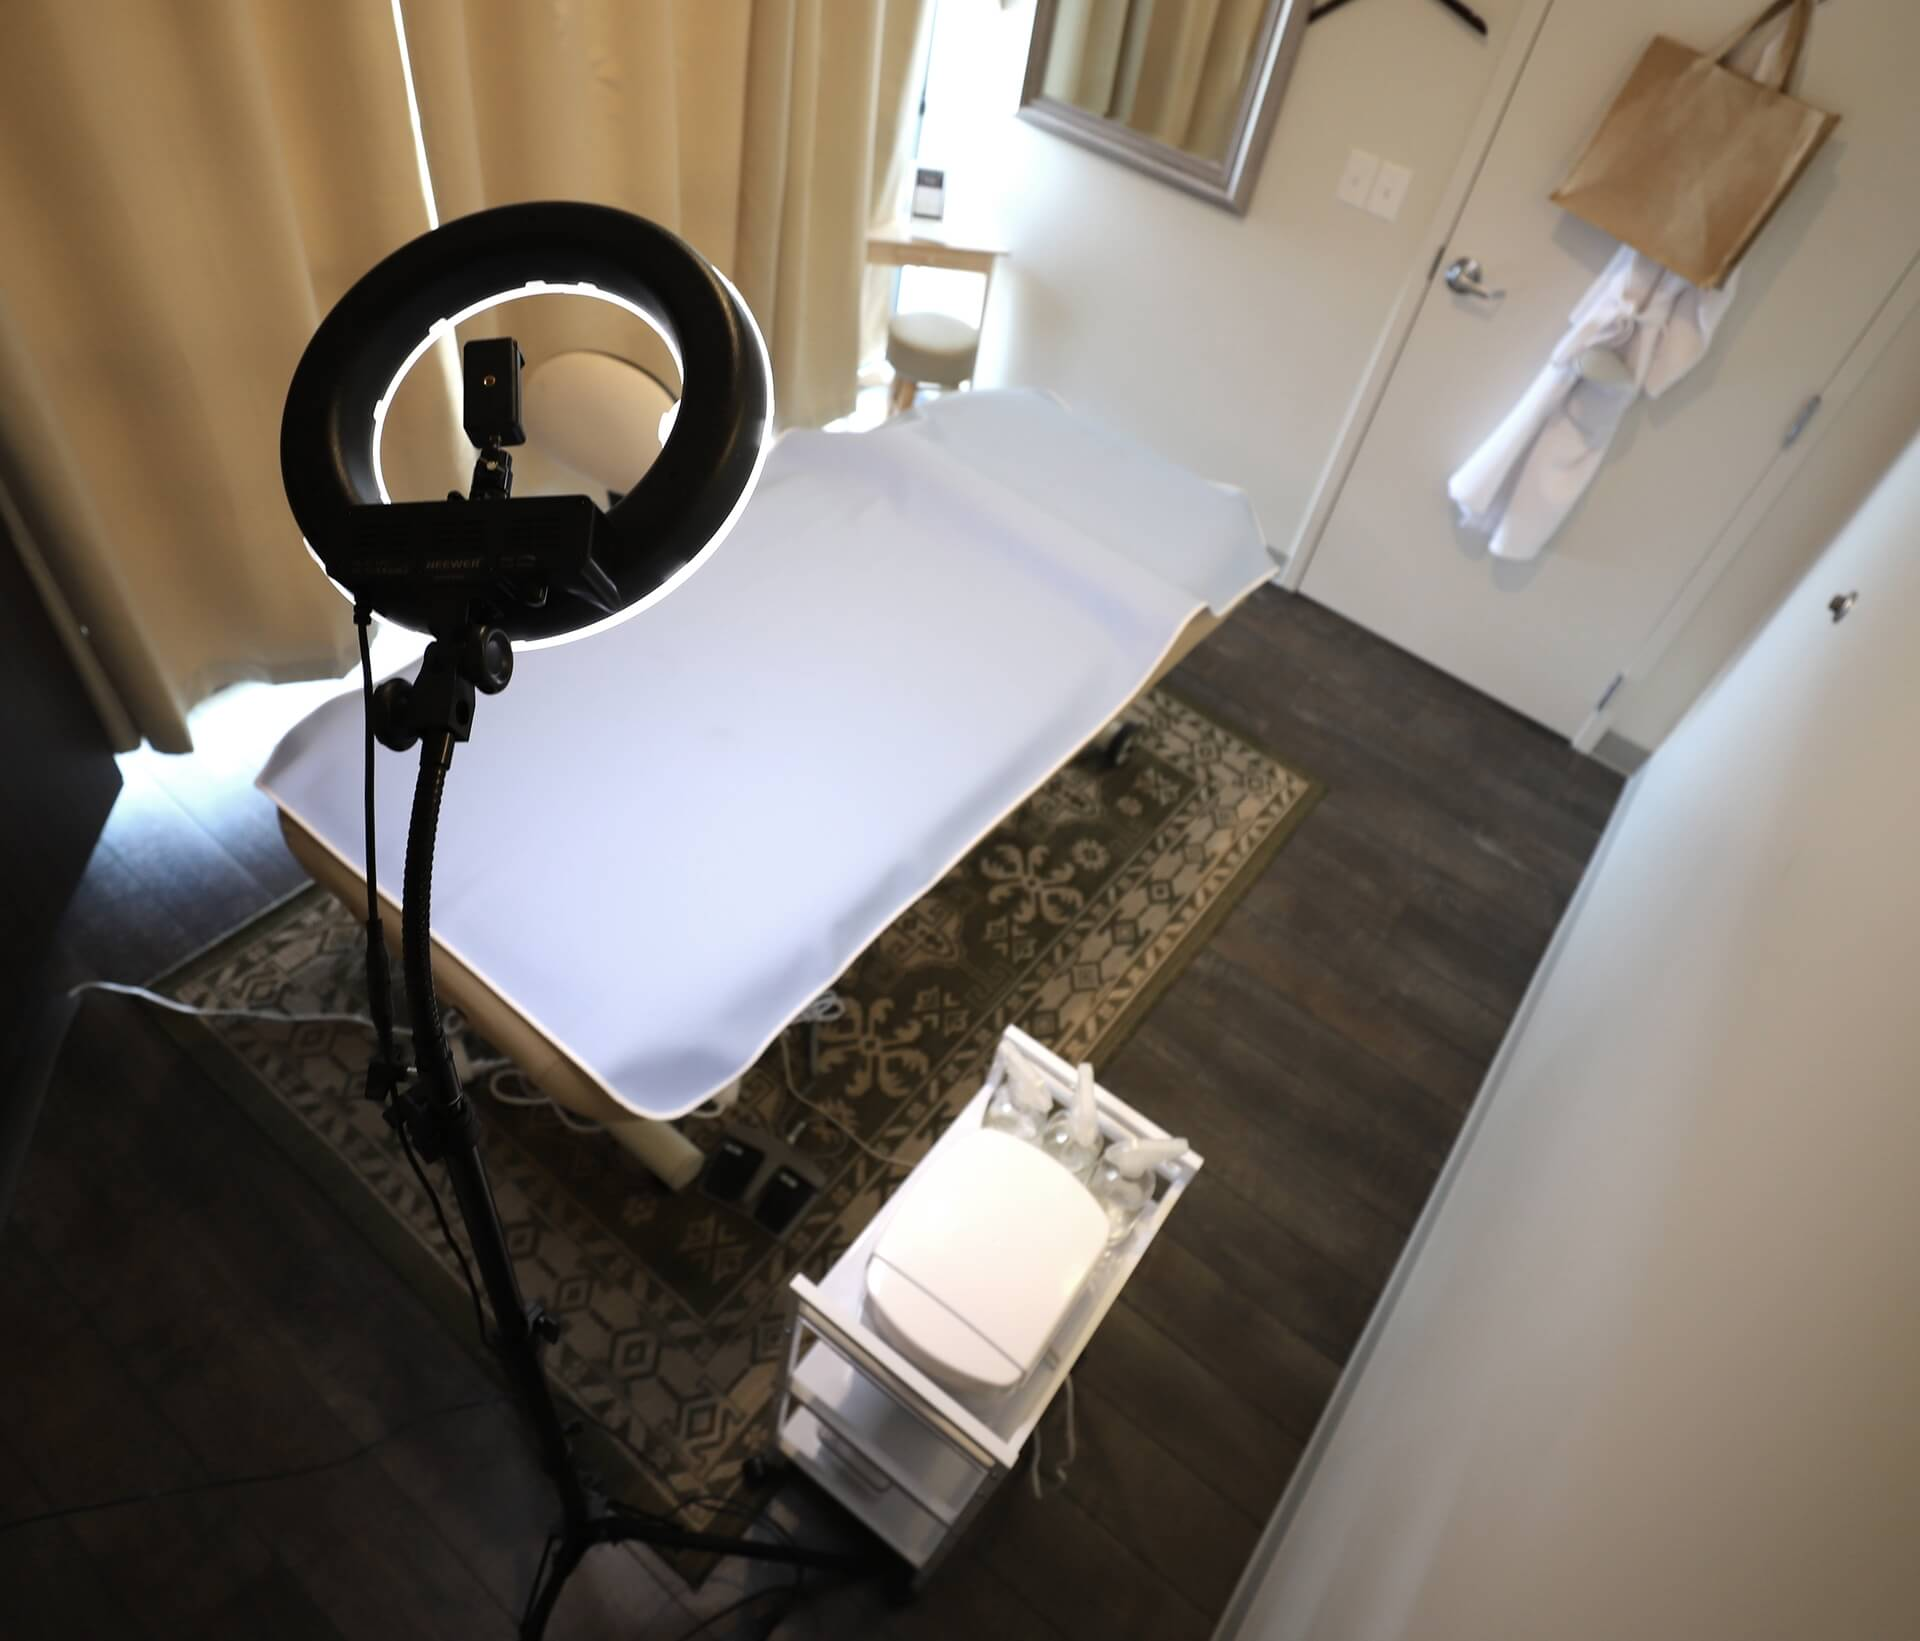 Peak Day Spa room located in Salt Lake City near Sugar House and Millcreek